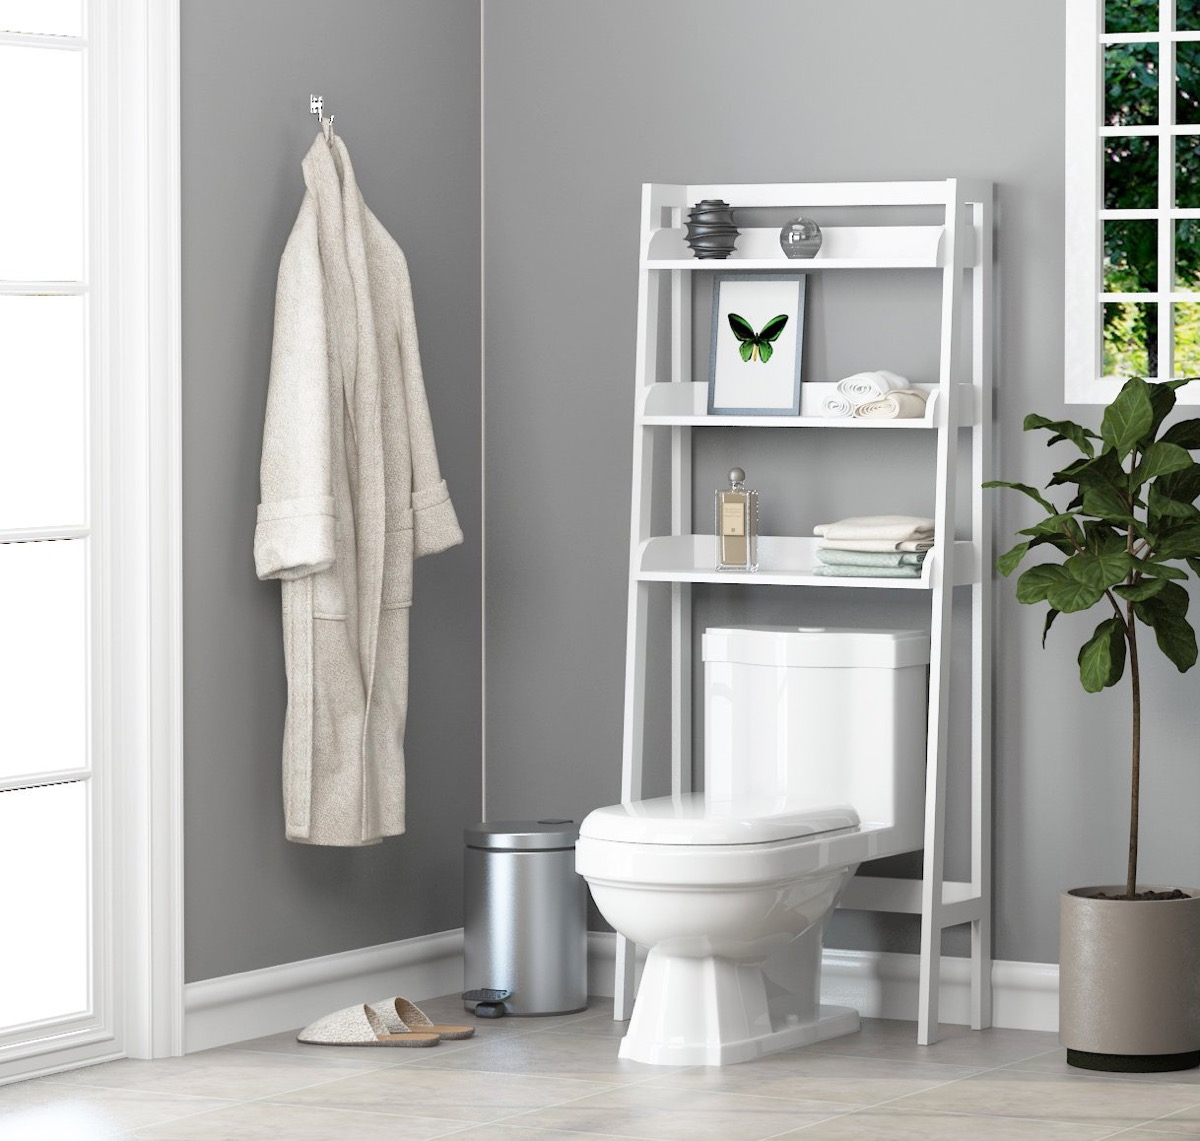 over-the-toilet-ladder-shelf-white-finish-modern-design